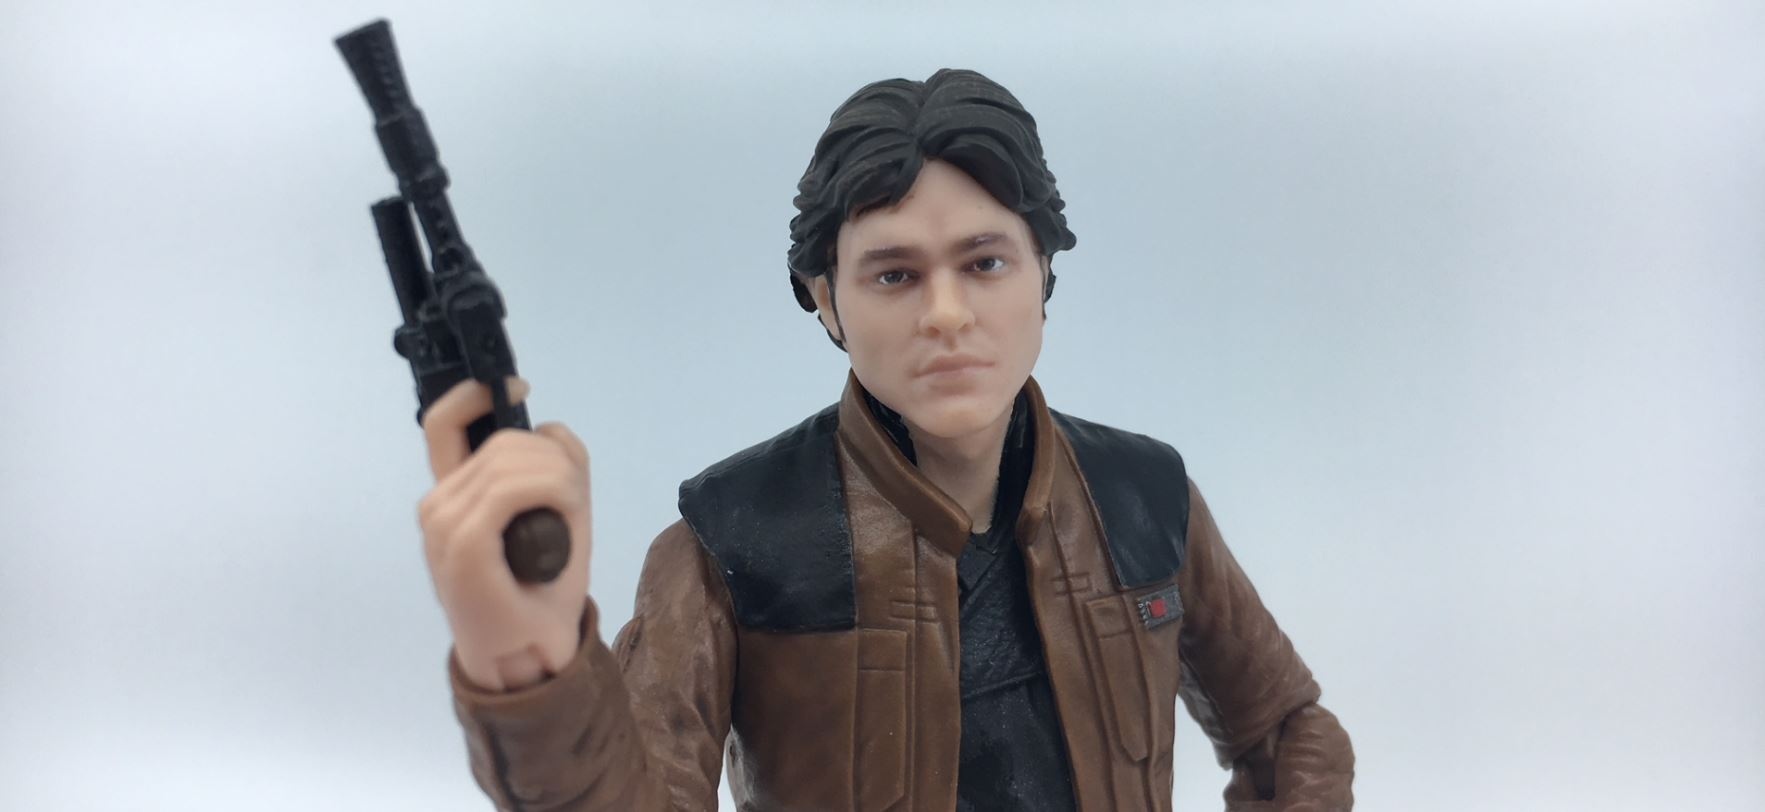 Action Figure Insider » Hasbro Star Wars Black Han Solo from